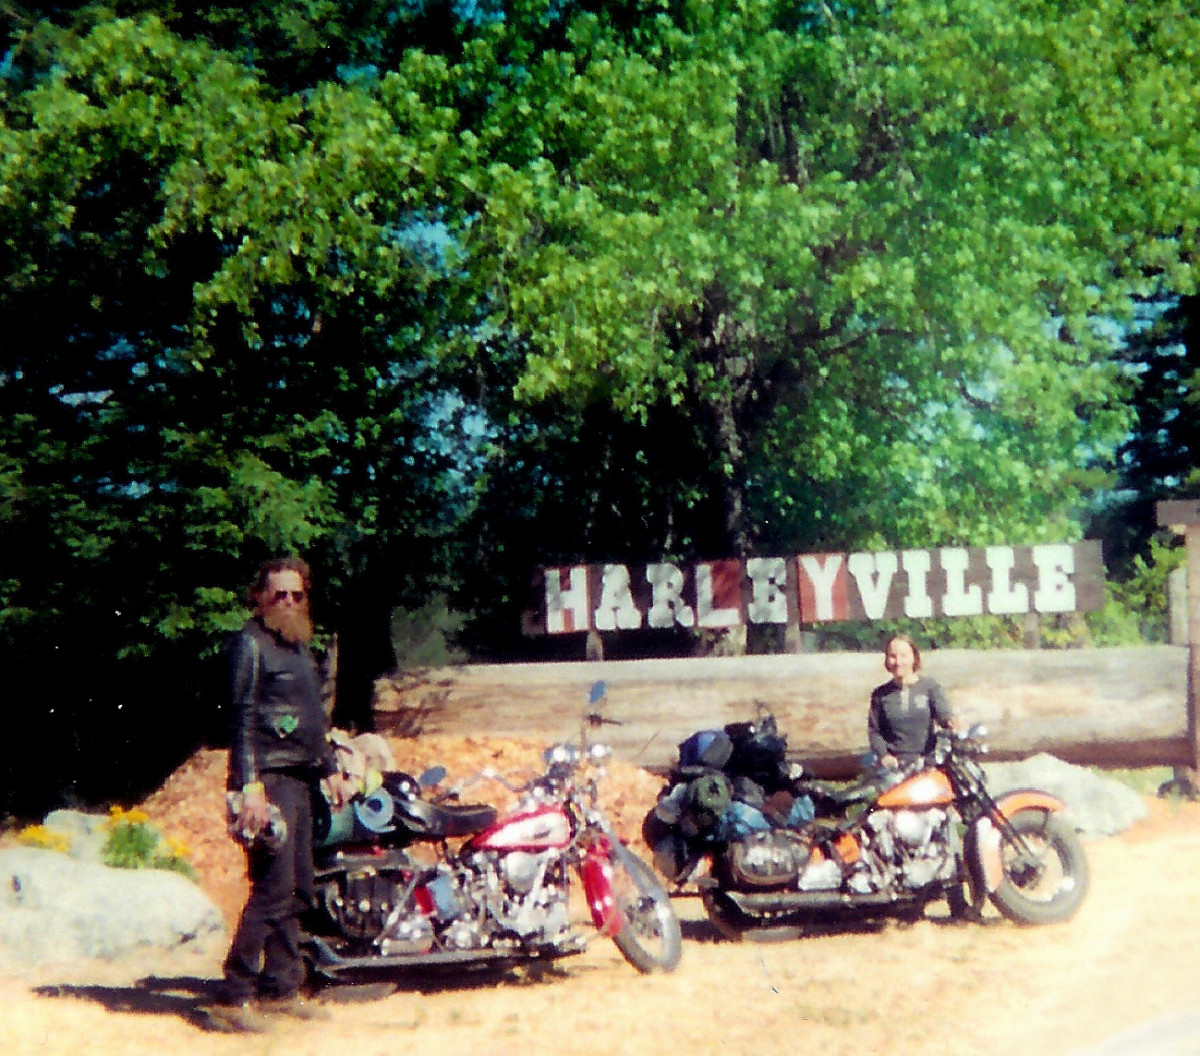 Knuckleheads at the Harleyville sign